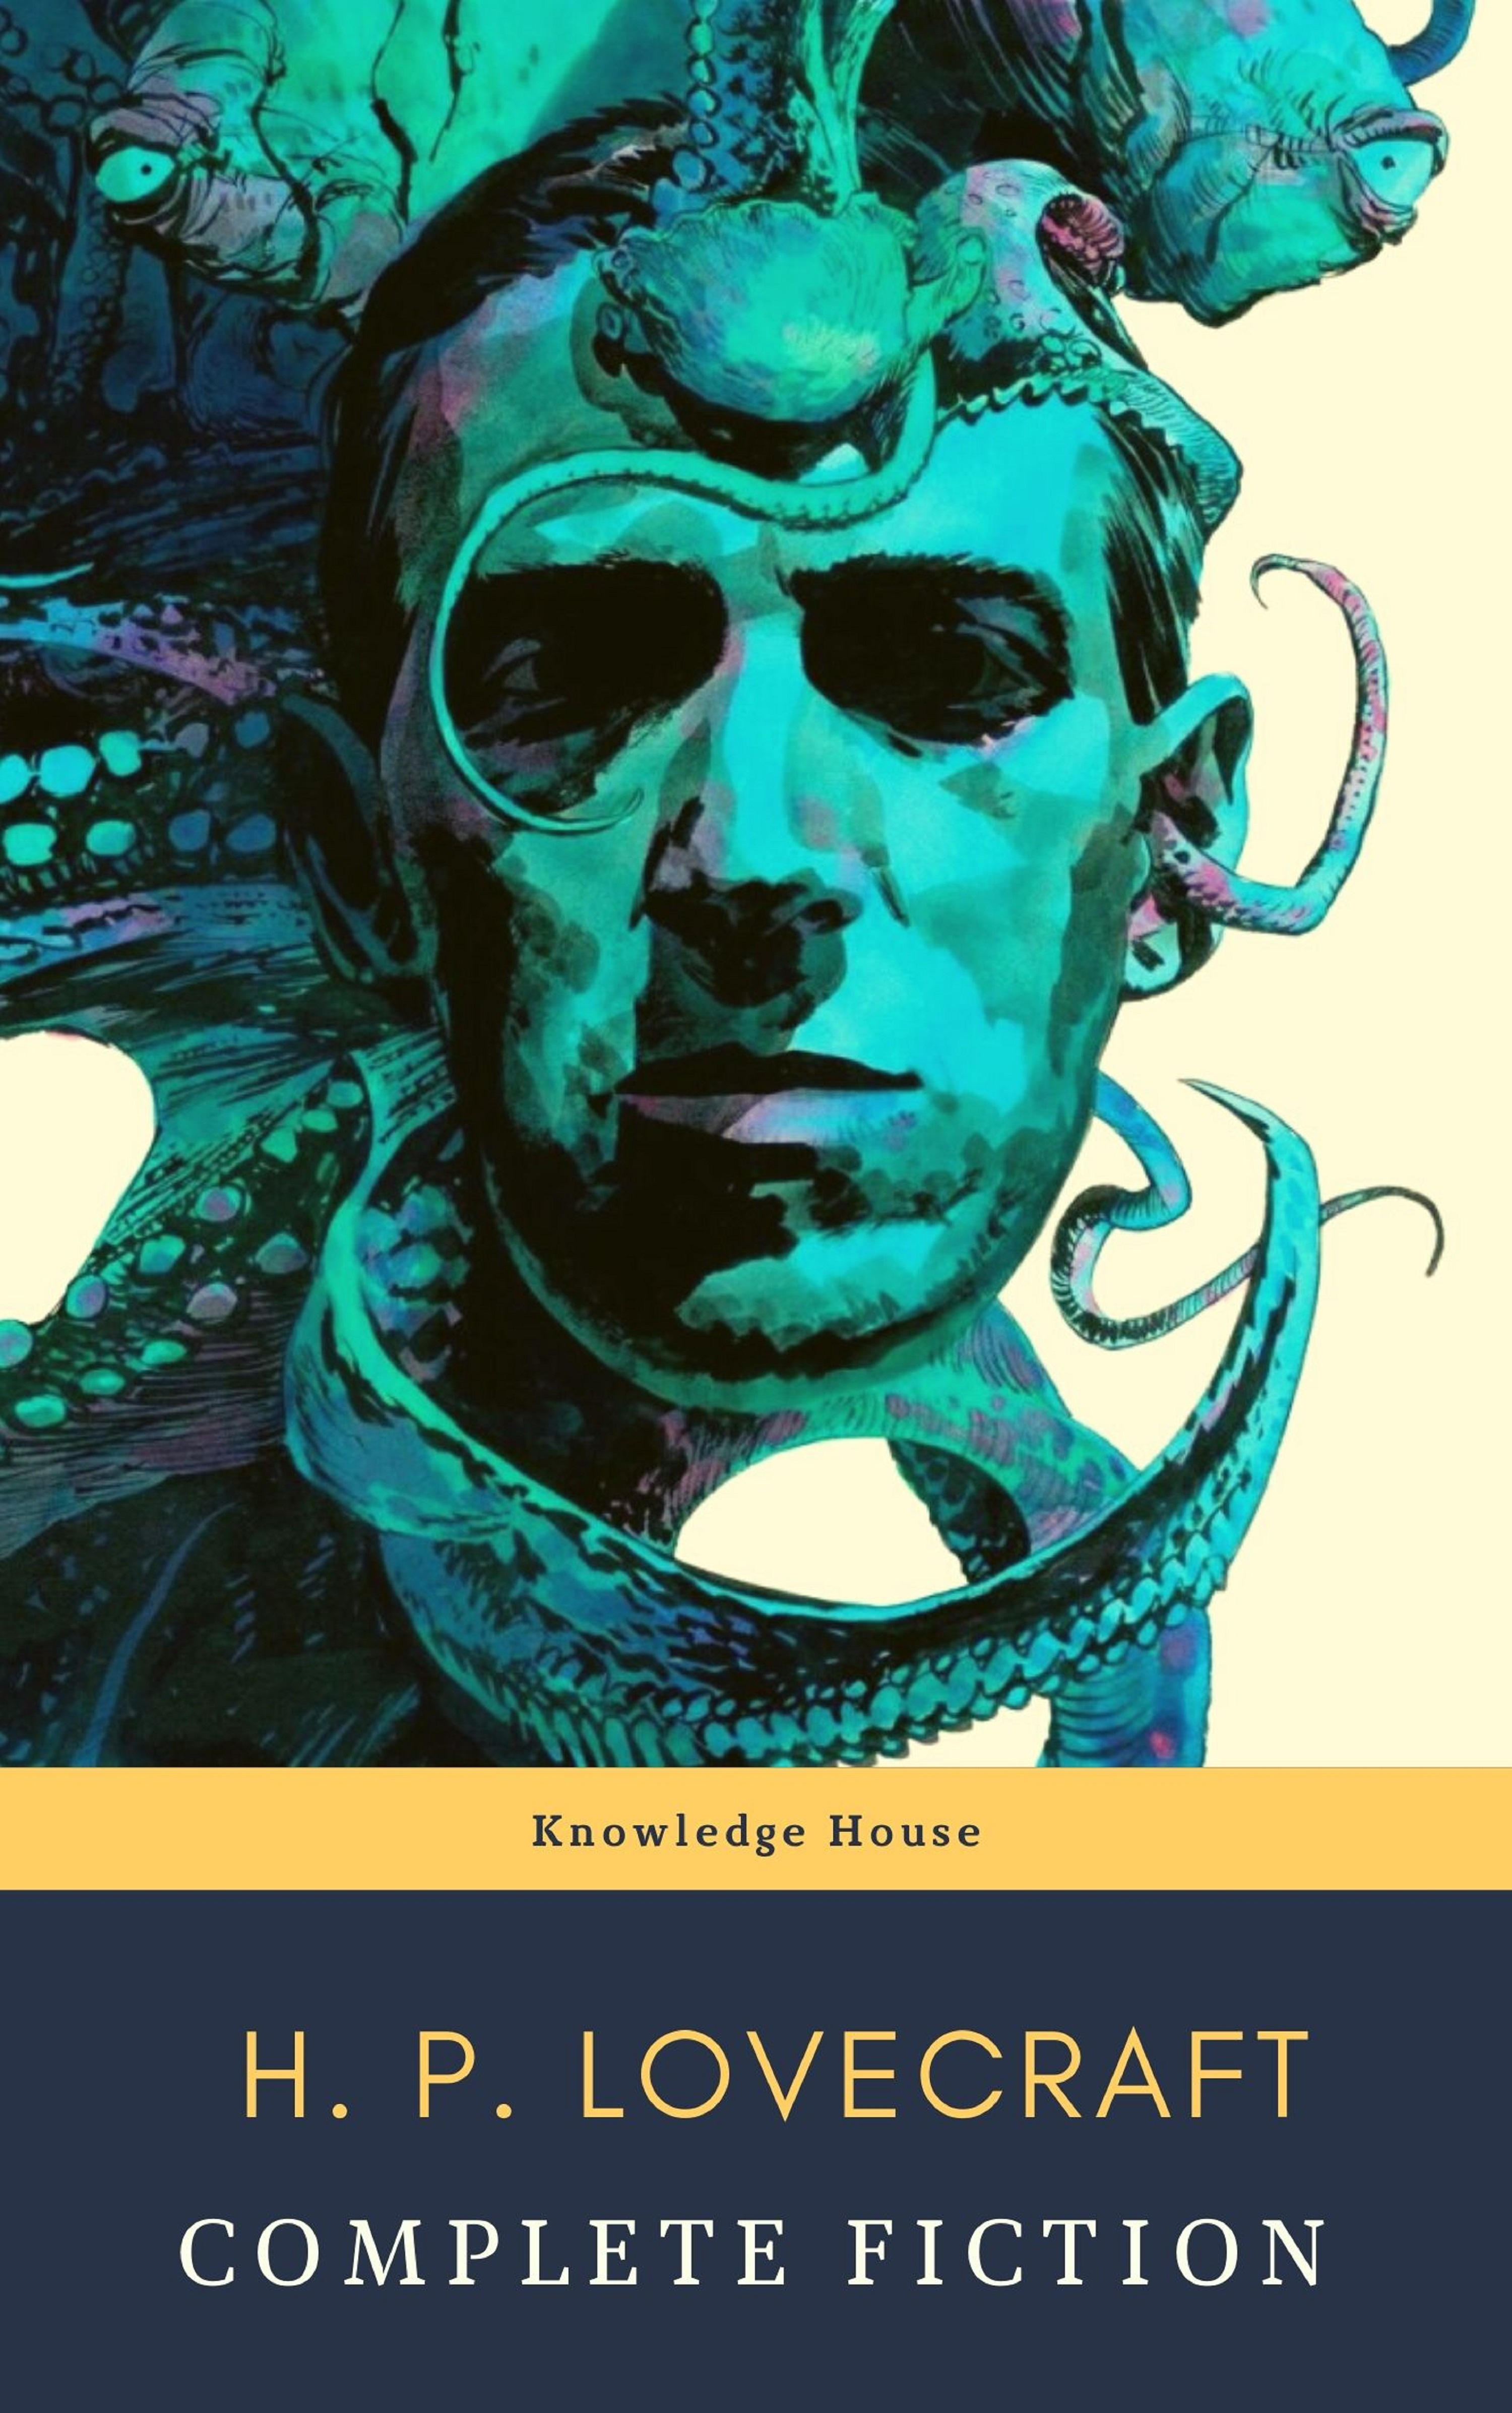 Knowledge house The Complete Fiction of H. P. Lovecraft: At the Mountains of Madness, The Call of Cthulhu the goldfinch